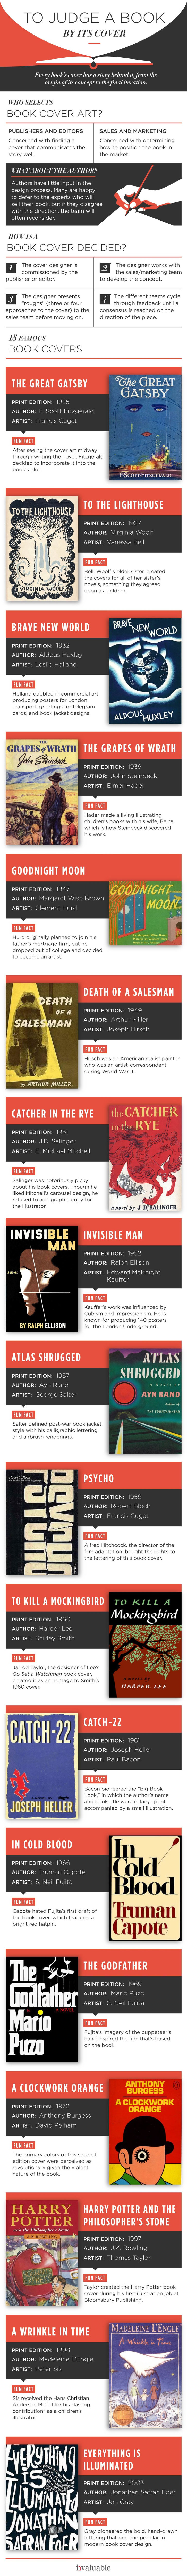 """[image description: The text of the infographic is as follows:To Judge a Book By Its Cover Every book's cover has a story behind it, from the origin of its concept to the final iteration. Who selects book cover art? Publishers and Editors are concerned with finding a cover that communicates the story well. Sales and Marketing are concerned with determining how to position the book in the market. What about the author? Authors have little input in the design process. Many are happy to defer to the experts who will sell their book, but if they disagree with the direction, the team will often reconsider. How is a book cover decided? The cover designer is commissioned by the publisher or editor. The designer communicates with the sales/marketing team to develop the concept. The designer presents """"roughs"""" (three or four approaches to the cover) to the sales team before moving forward. The different teams cycle through feedback until a consensus is reached on the direction of the piece. 18 Famous Book Covers: You know the author, but do you know the artist behind these iconic book jackets? The Great Gatsby. Print edition: 1925. Author: F. Scott Fitzgerald. Artist: Francis Cugat. Fun fact: After seeing the cover art midway through writing the novel, Fitzgerald decided to incorporate it (the eyes) into the book's plot. To the Lighthouse. Print edition: 1927. Author: Virginia Woolf. Artist: Vanessa Bell. Fun fact: Bell, Woolf's older sister, created the covers for all of her sister's novels, something they agreed upon as children. Brave New World. Print edition: 1932. Author: Aldous Huxley. Artist: Leslie Holland. Fun fact: Holland dabbled in commercial art, producing posters for London Transport, greetings for telegram cards, and book jacket designs. The Grapes of Wrath. Print edition: 1939. Author: John Steinbeck. Artist: Elmer Hader. Fun fact: Hader made a living illustrating children's books with his wife, Berta, which is how Steinbeck discovered his work. Goodnight Moon"""